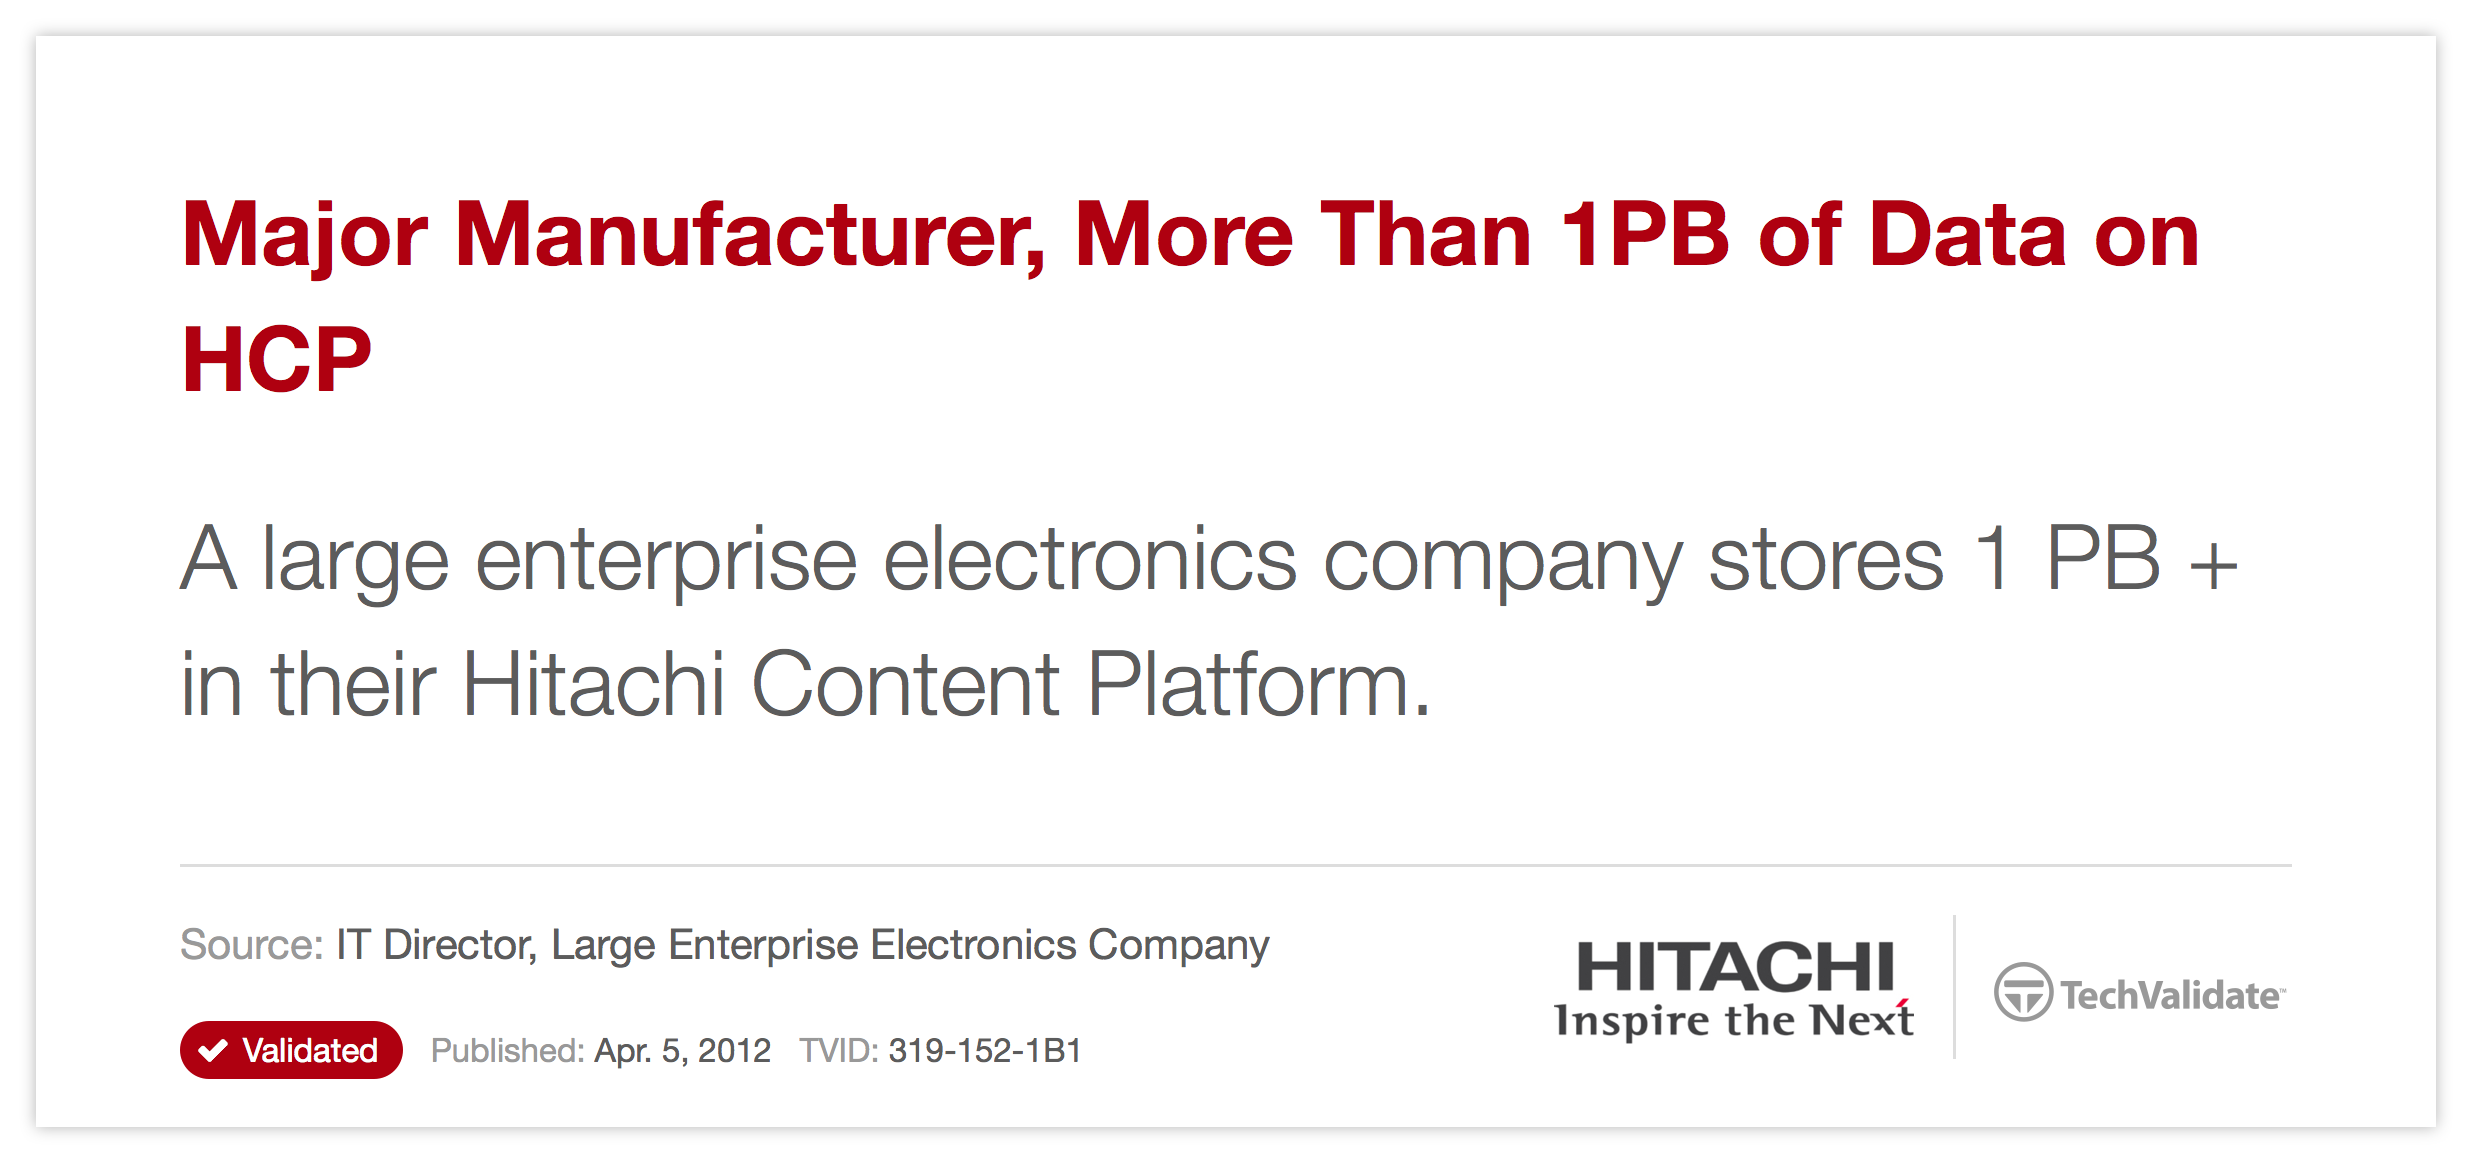 Major Manufacturer, More Than 1PB of Data on HCP